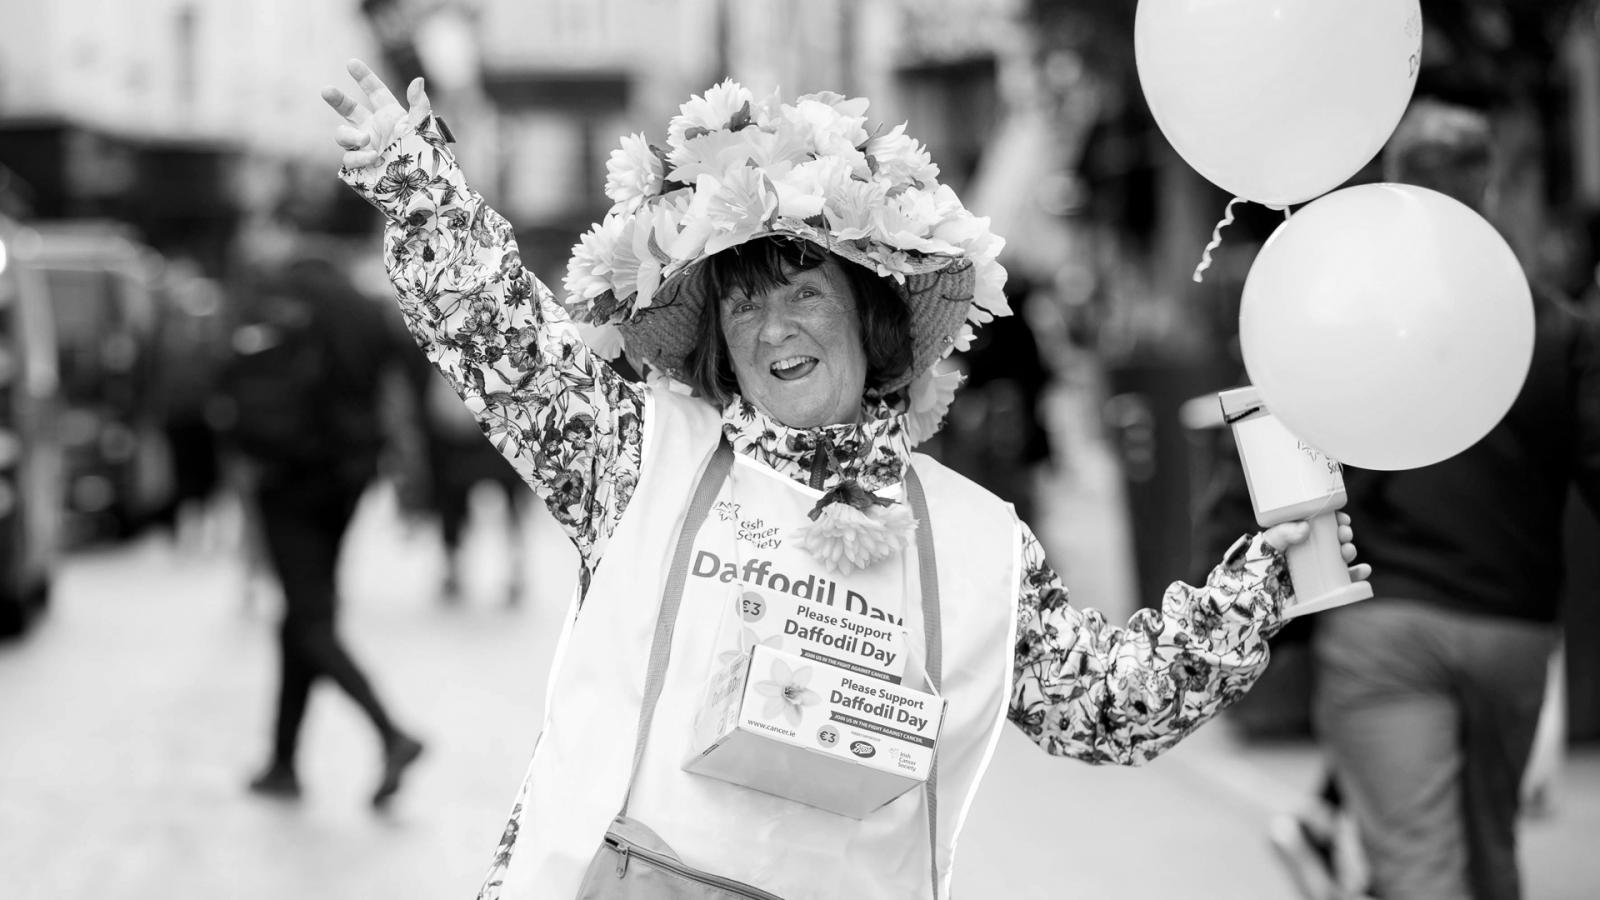 Woman on Daffodil Day